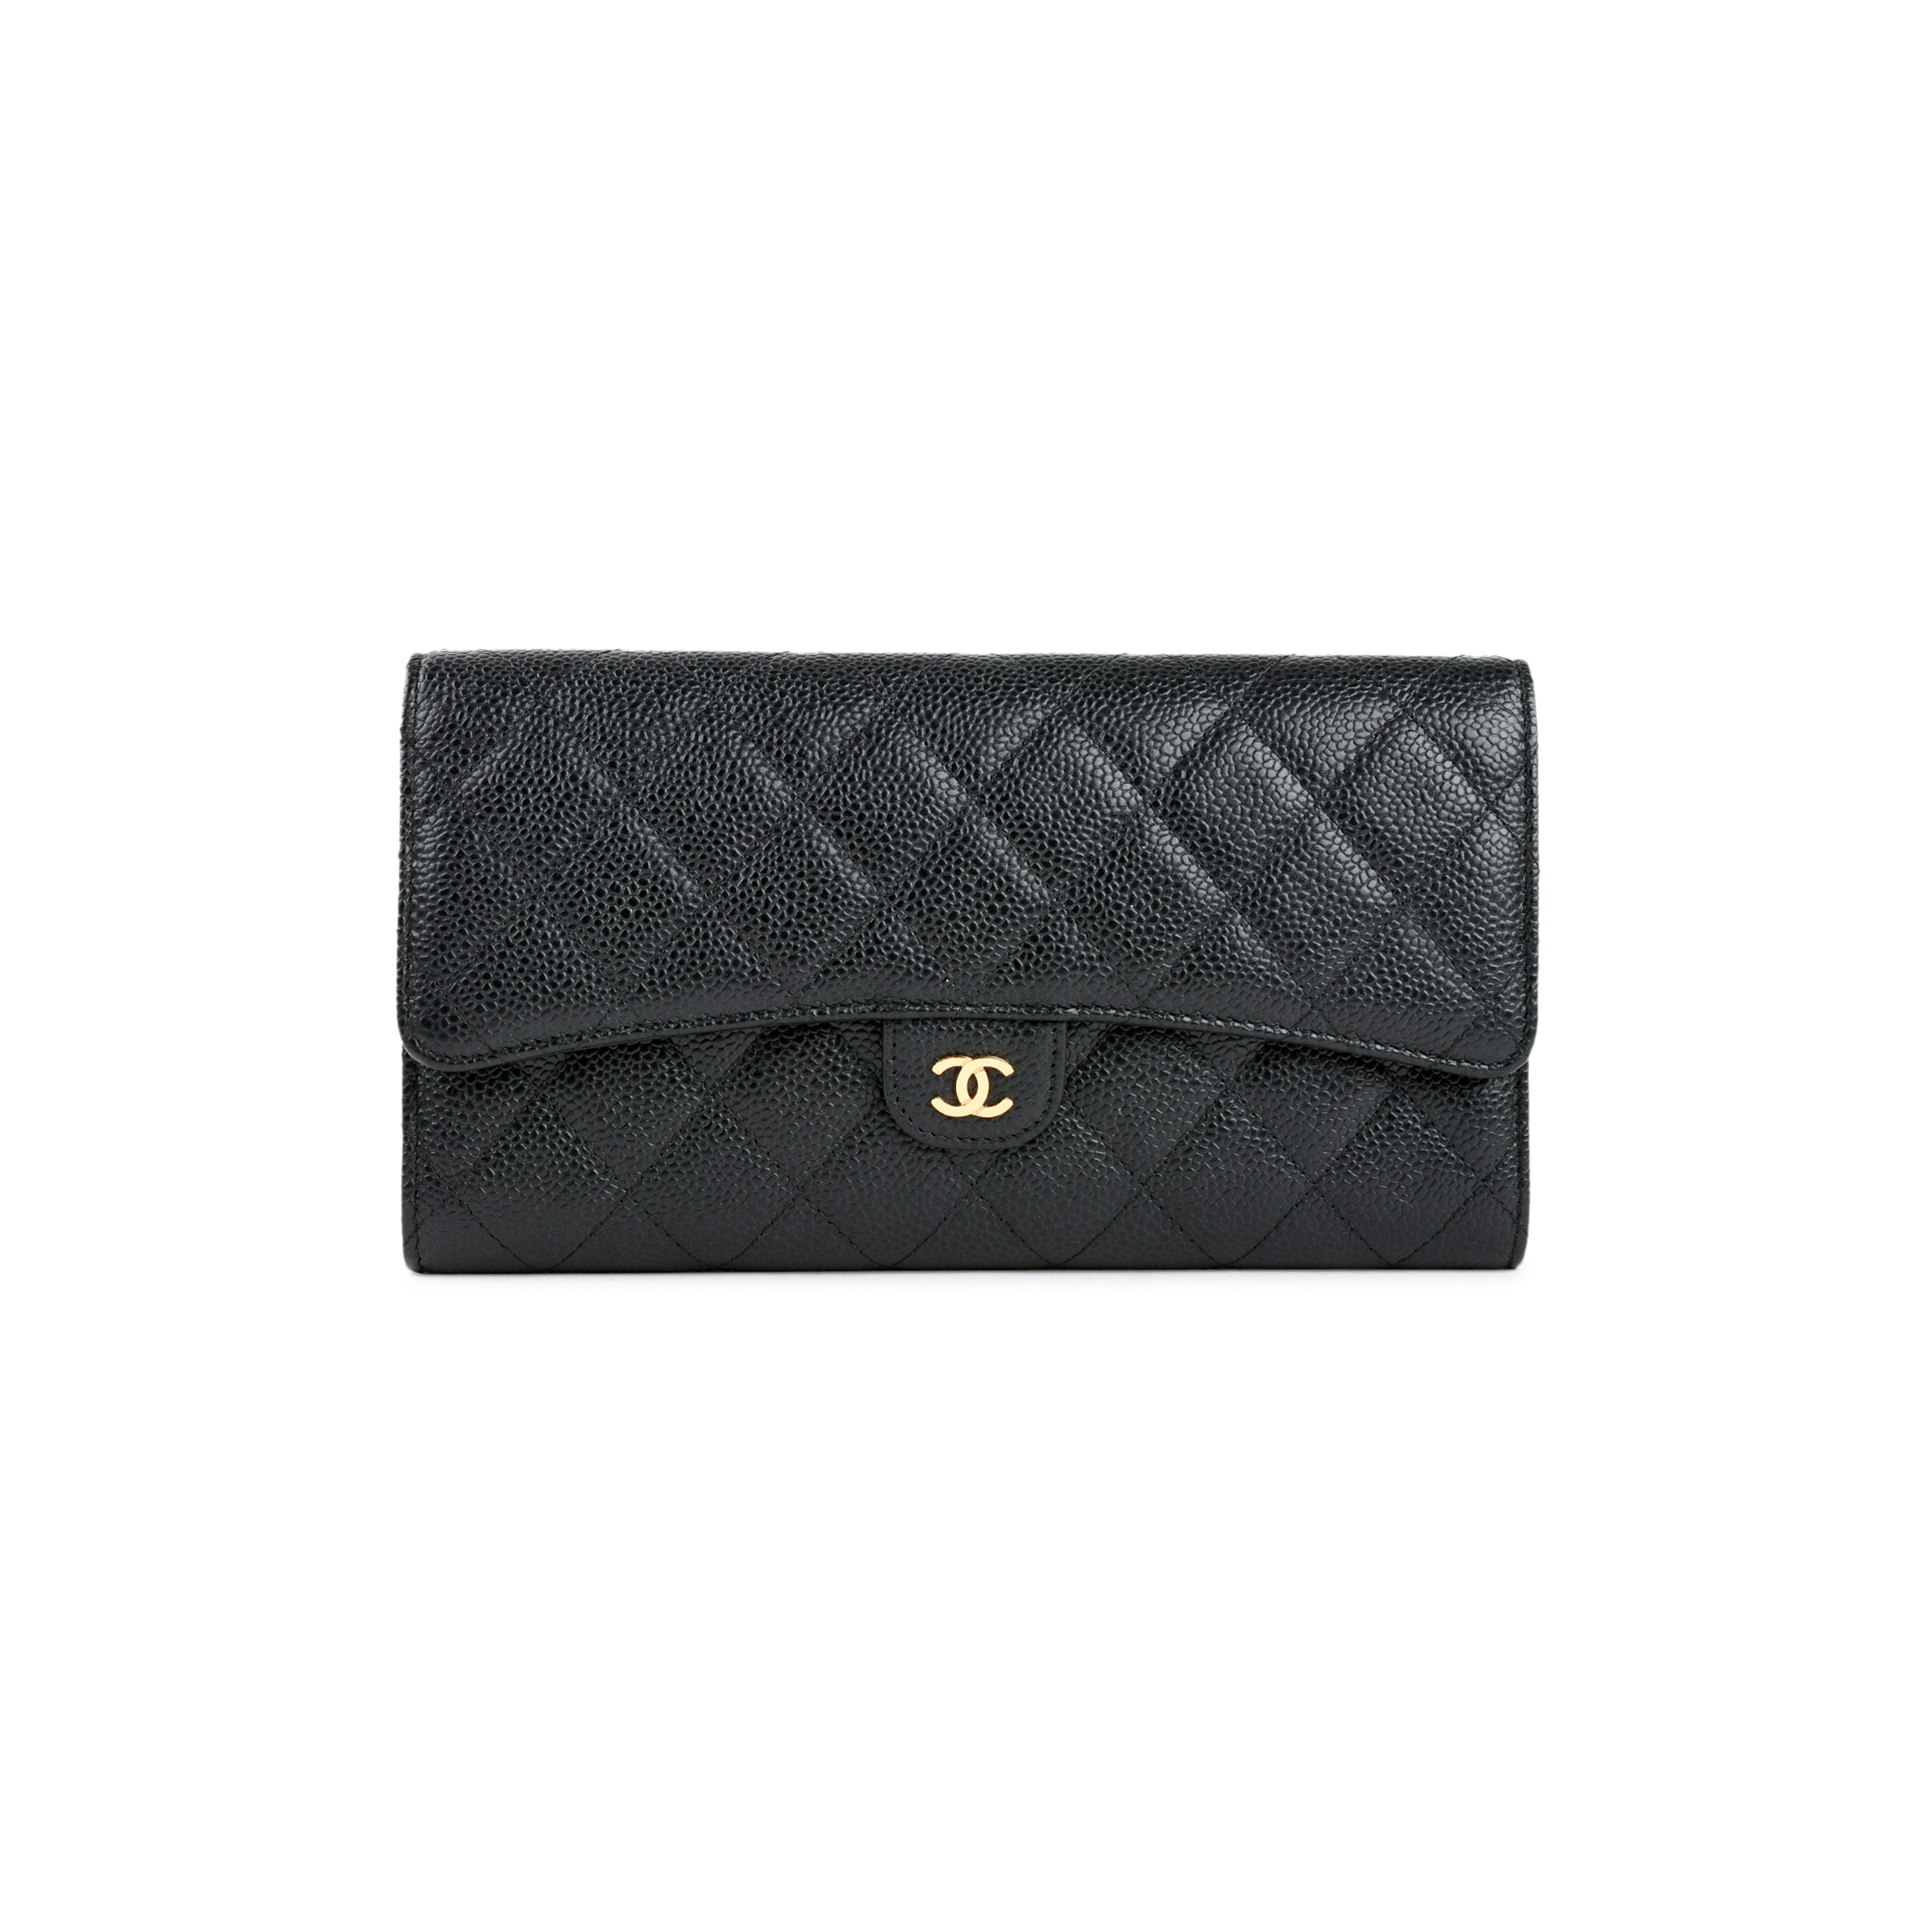 b4c1fe90621174 Authentic Second Hand Chanel Quilted Caviar Long Wallet (PSS-466-00002) |  THE FIFTH COLLECTION